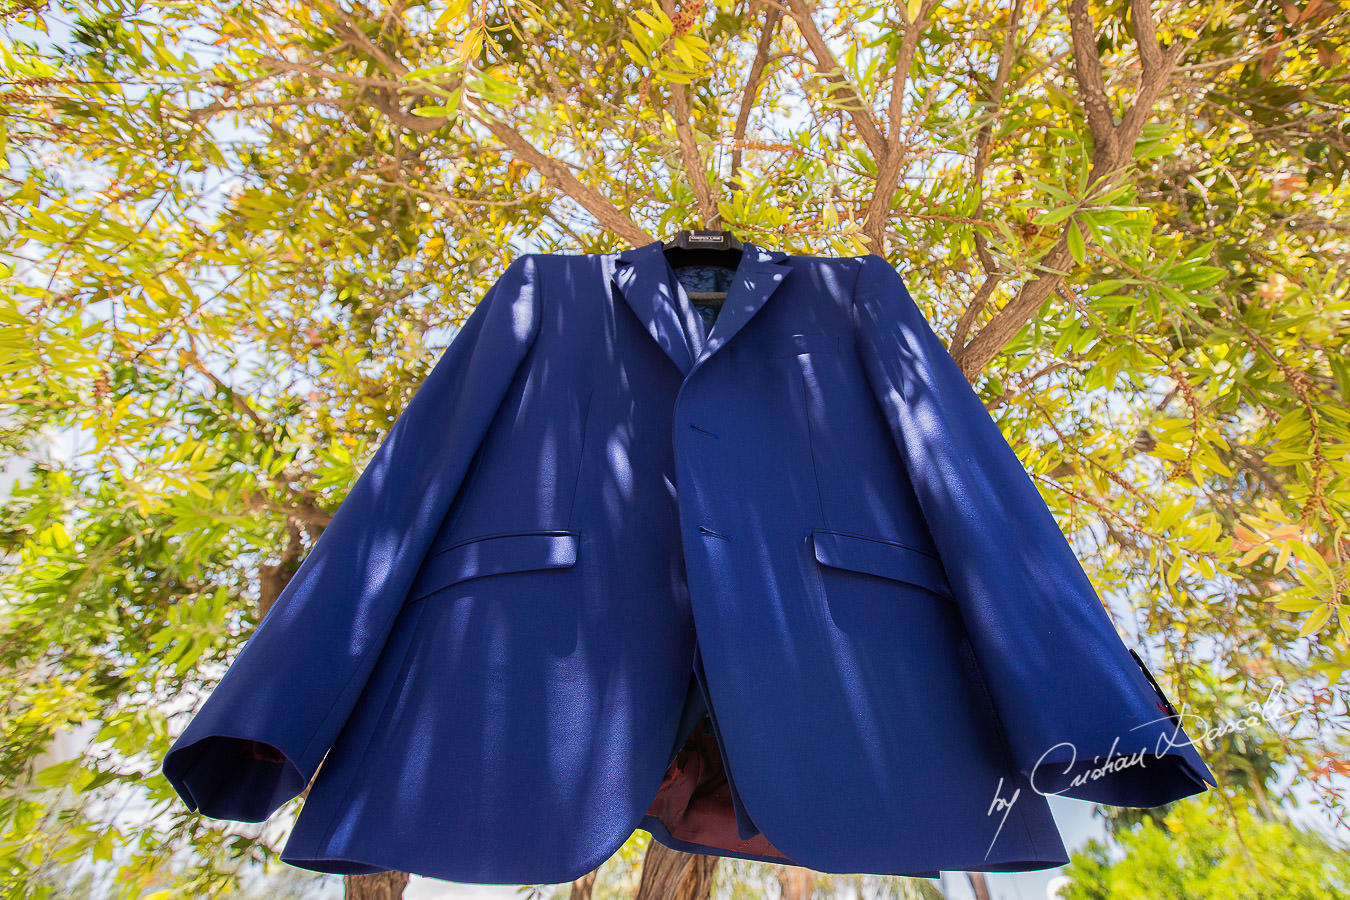 Groom's suit hanged on a tree in front of the groom's house, captured at a wedding in Cyprus by Photographer Cristian Dascalu.